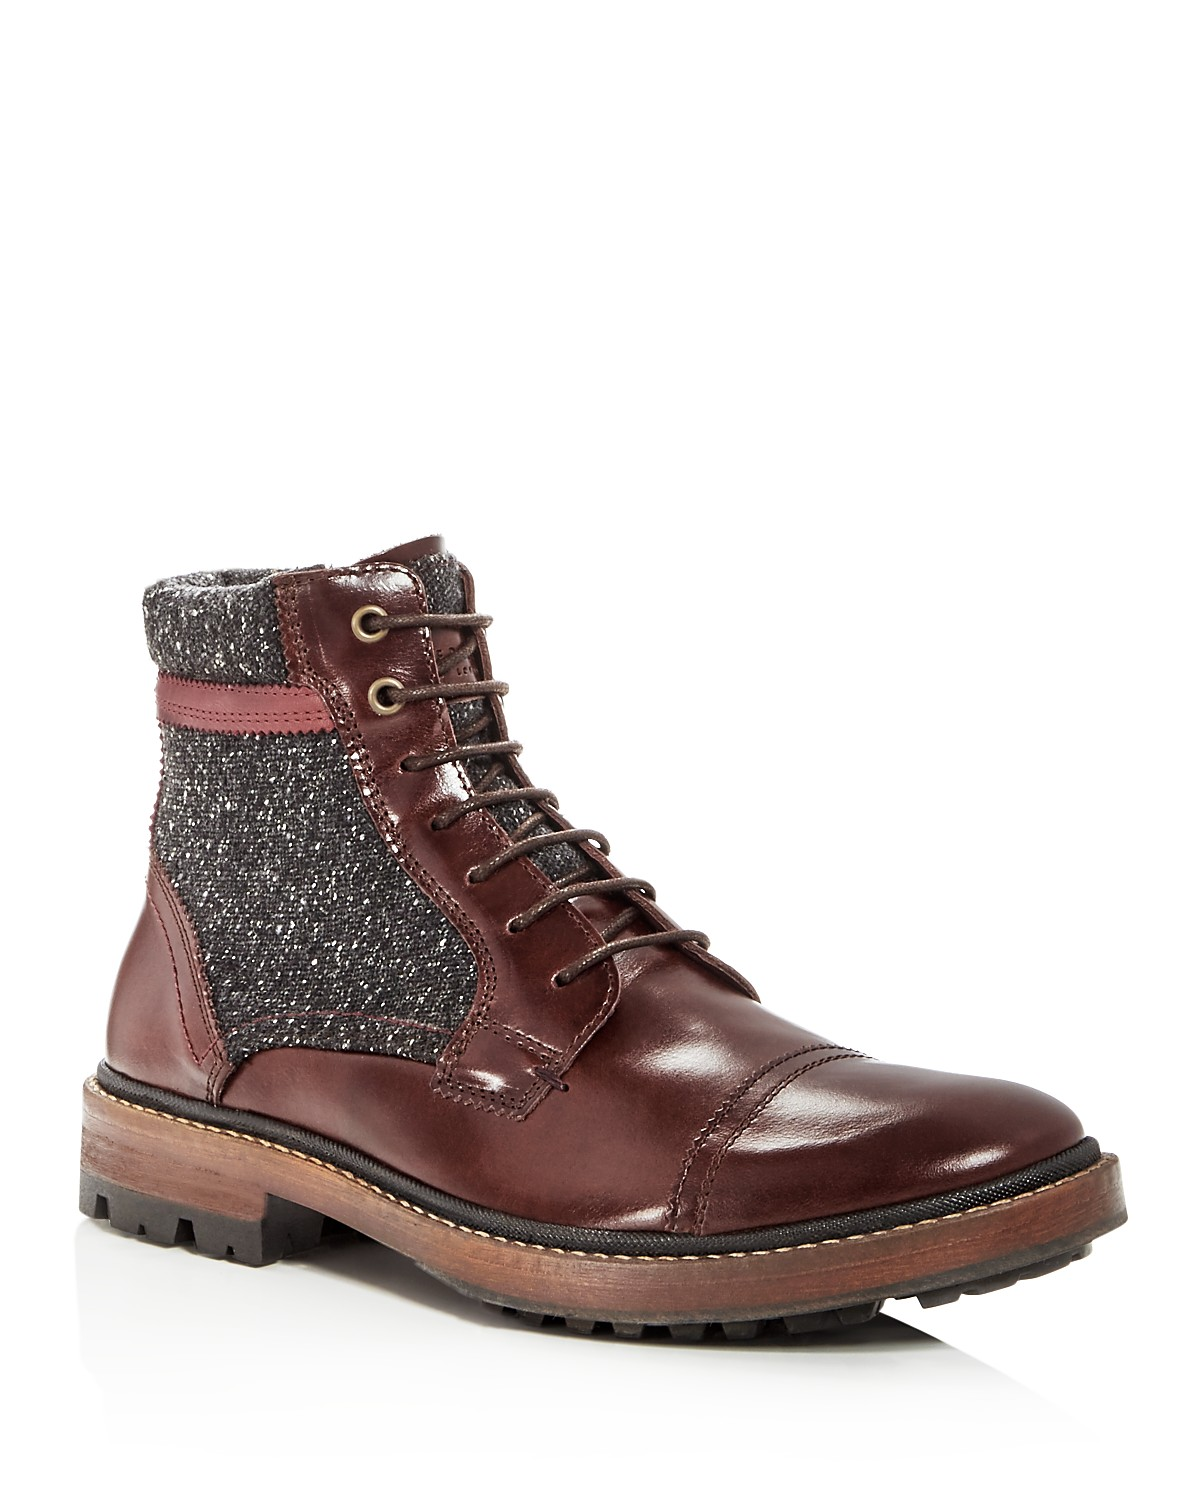 Ted Baker Men's Ruulen Leather Lace Up Boots 1mHooaAyHH